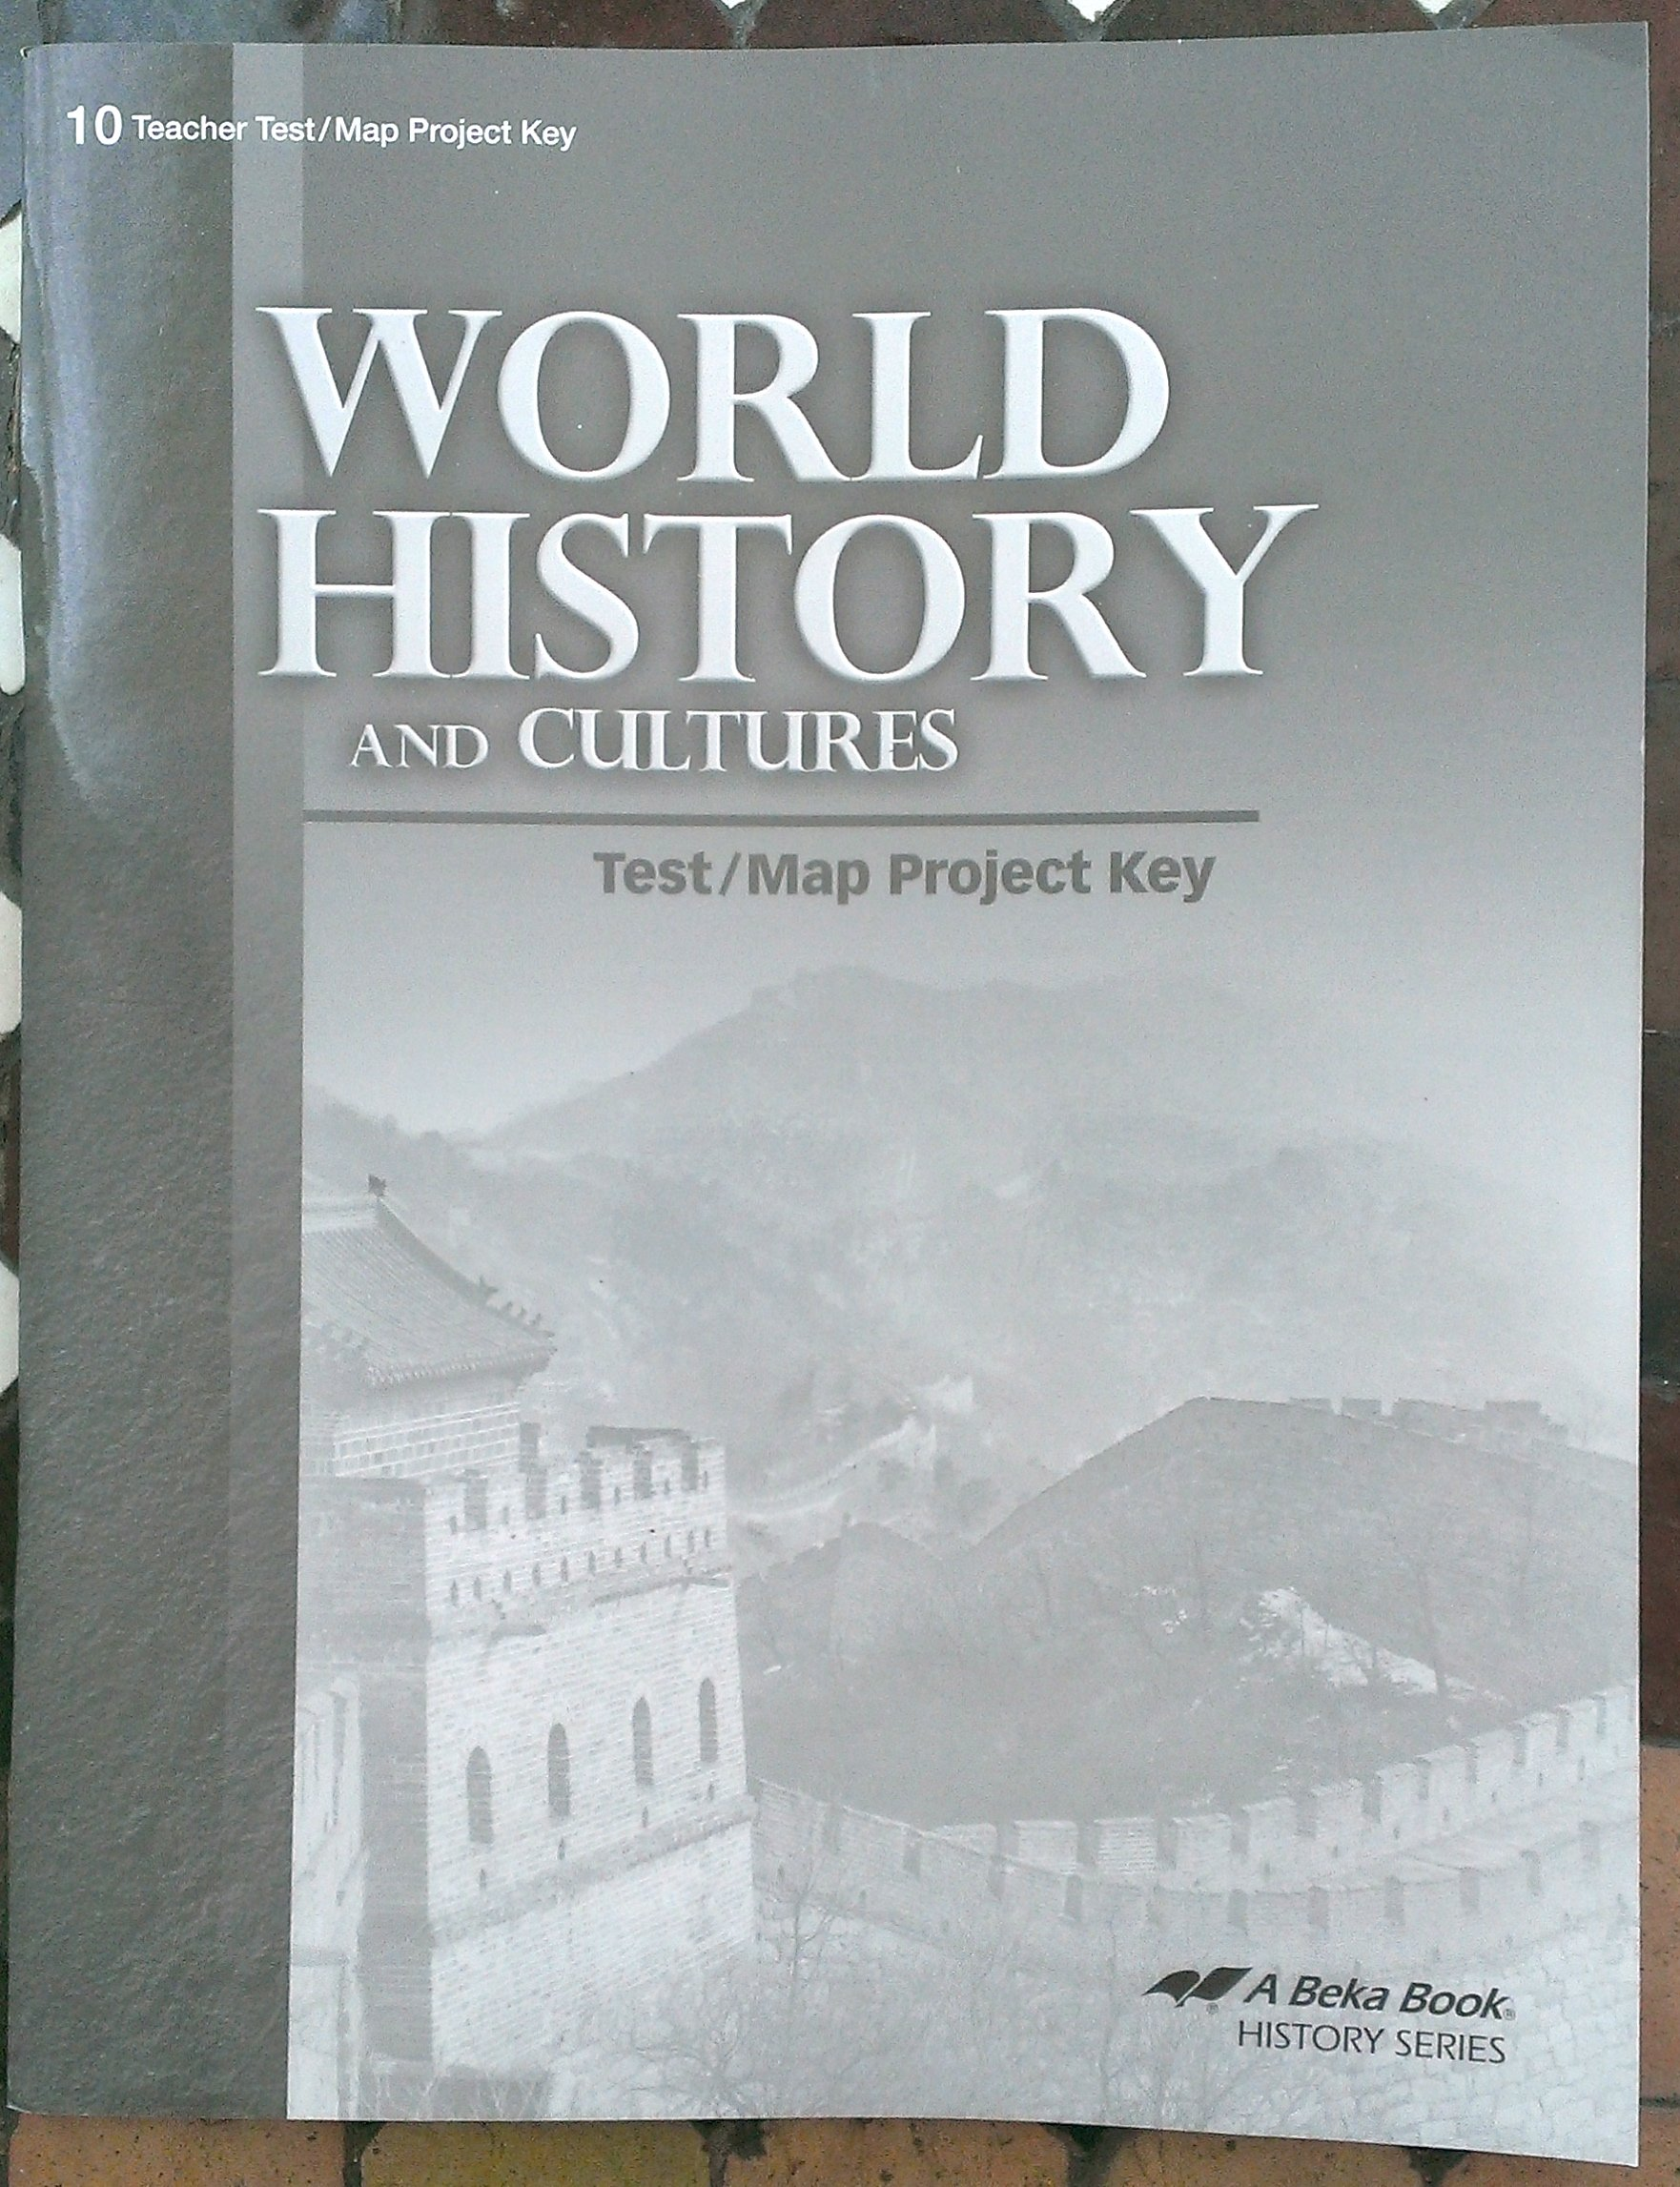 World history and cultures test map project key teacher key a beka world history and cultures test map project key teacher key a beka book amazon books gumiabroncs Gallery